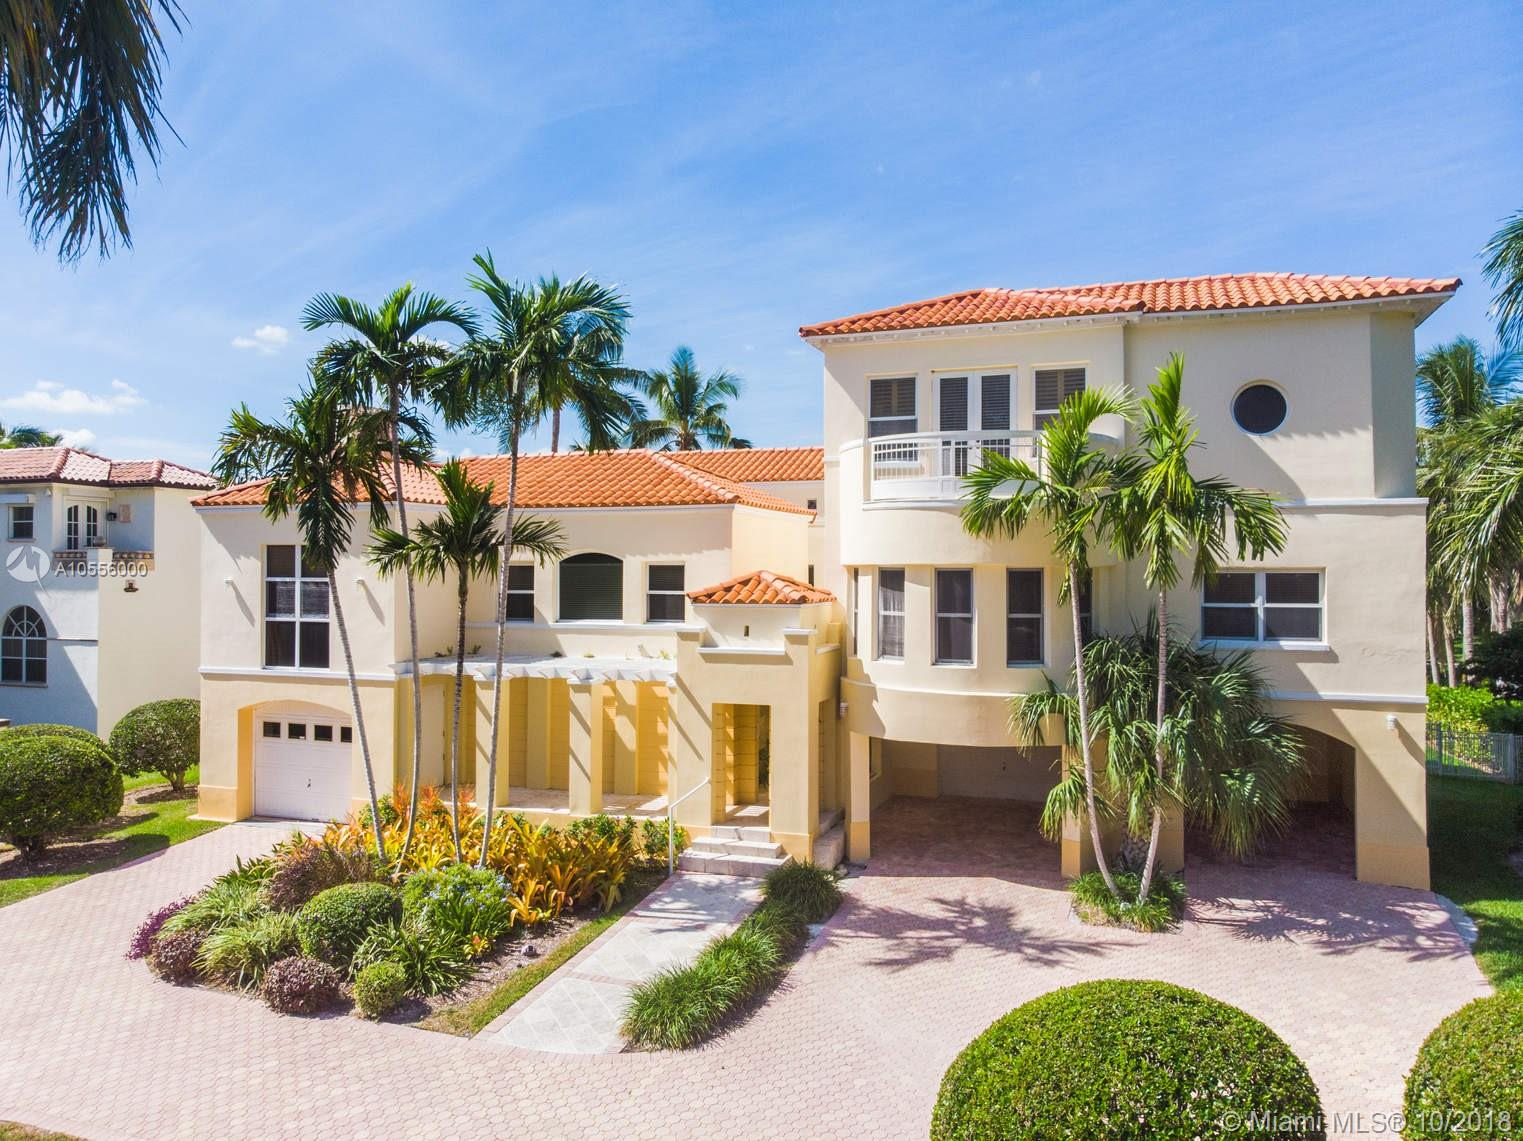 On prestigious Mar Street in gated Gables by the Sea you will find this 5/5/1 contemporary masterpiece w/110' of seawall + no bridges to Biscayne Bay! Davits, boat lift + floating dock are a boater's dream come true! The 2nd floor living spaces are generous + architecturally interesting. The large eat-in kitchen provides beautiful views to the pool + wide canal. Sit on the back patio + enjoy Miami's beautiful sunsets. The spectacular, private master suite on the 3rd level includes generous his/her walk-in closets, sitting area + luxurious master bathroom. On the ground level you will find 2 garages + a completely enclosed basement. This is a very special home which will allow you to enjoy all that Miami coastal living has to offer! Excellent public + private schools, neighborhood park.